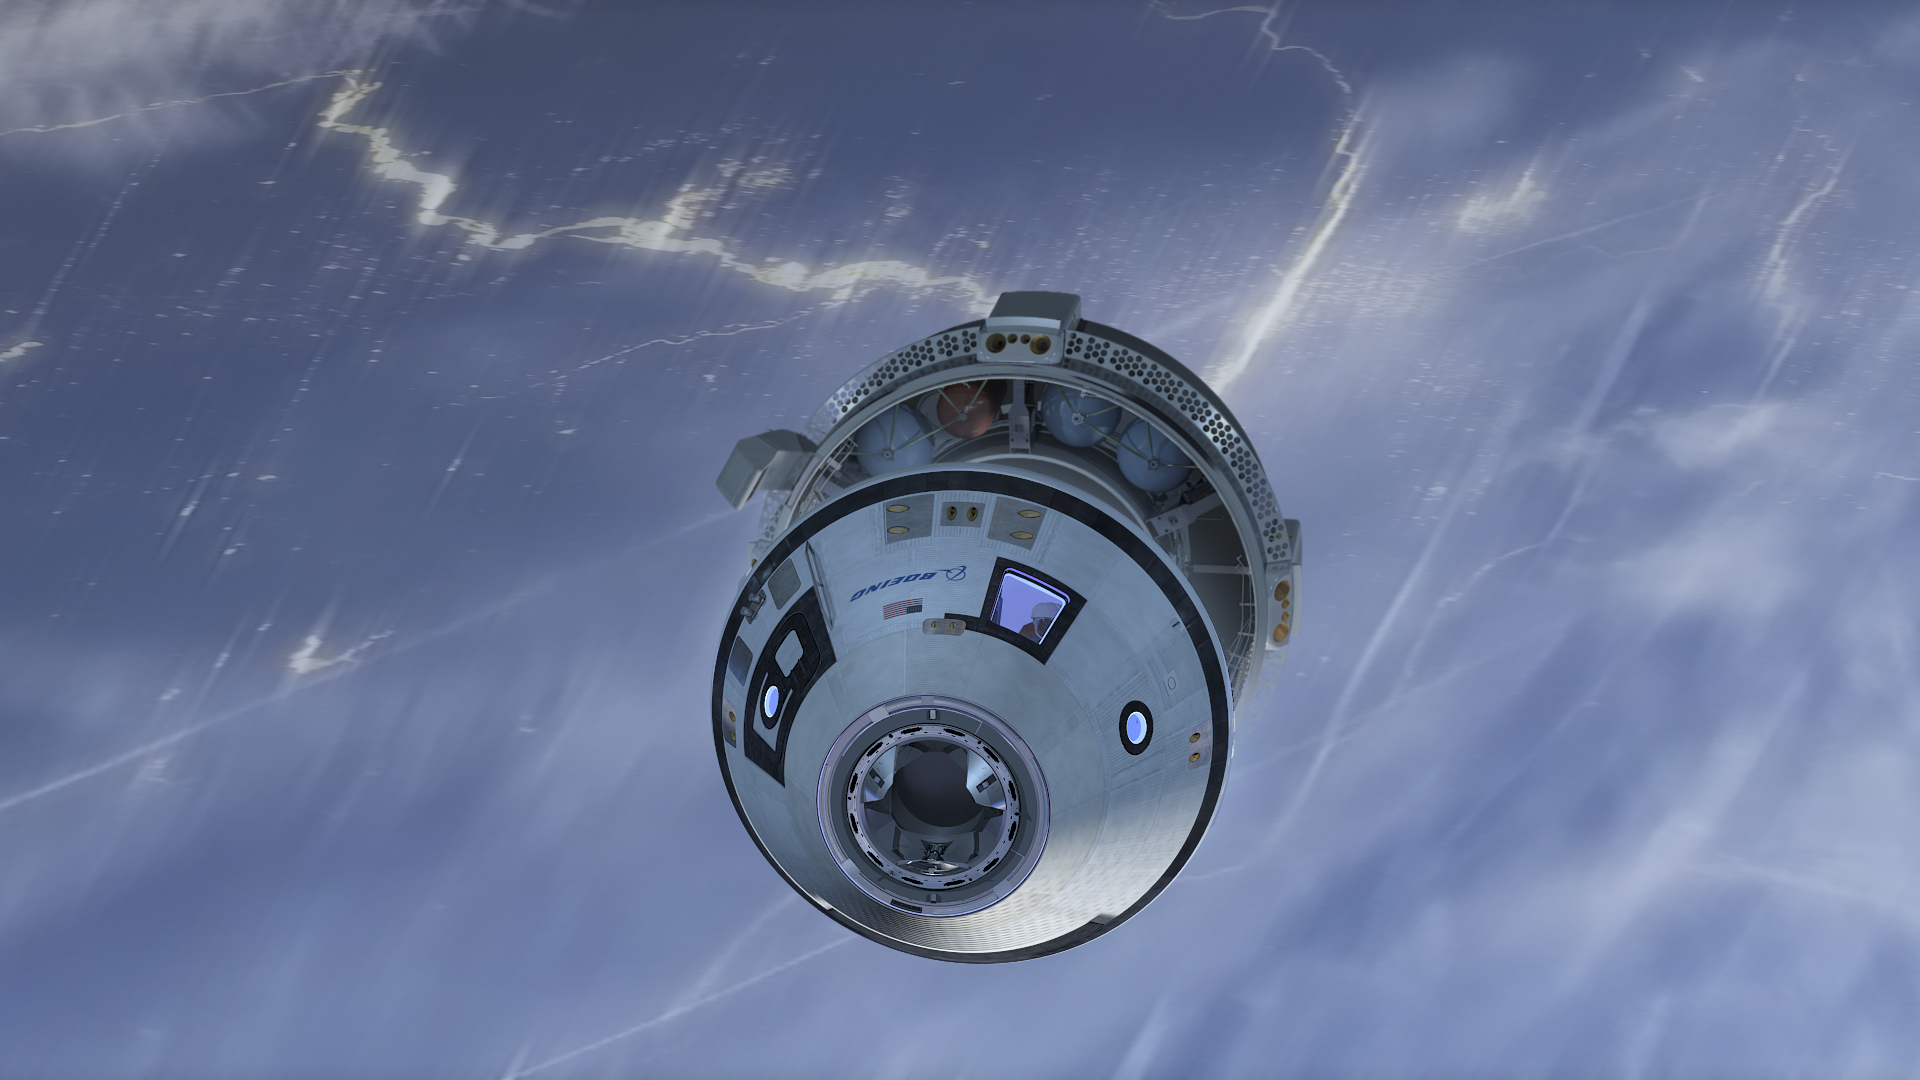 Artist's concept of the CST-100 crew module separating from its service module prior to re-entry. Credit: Boeing